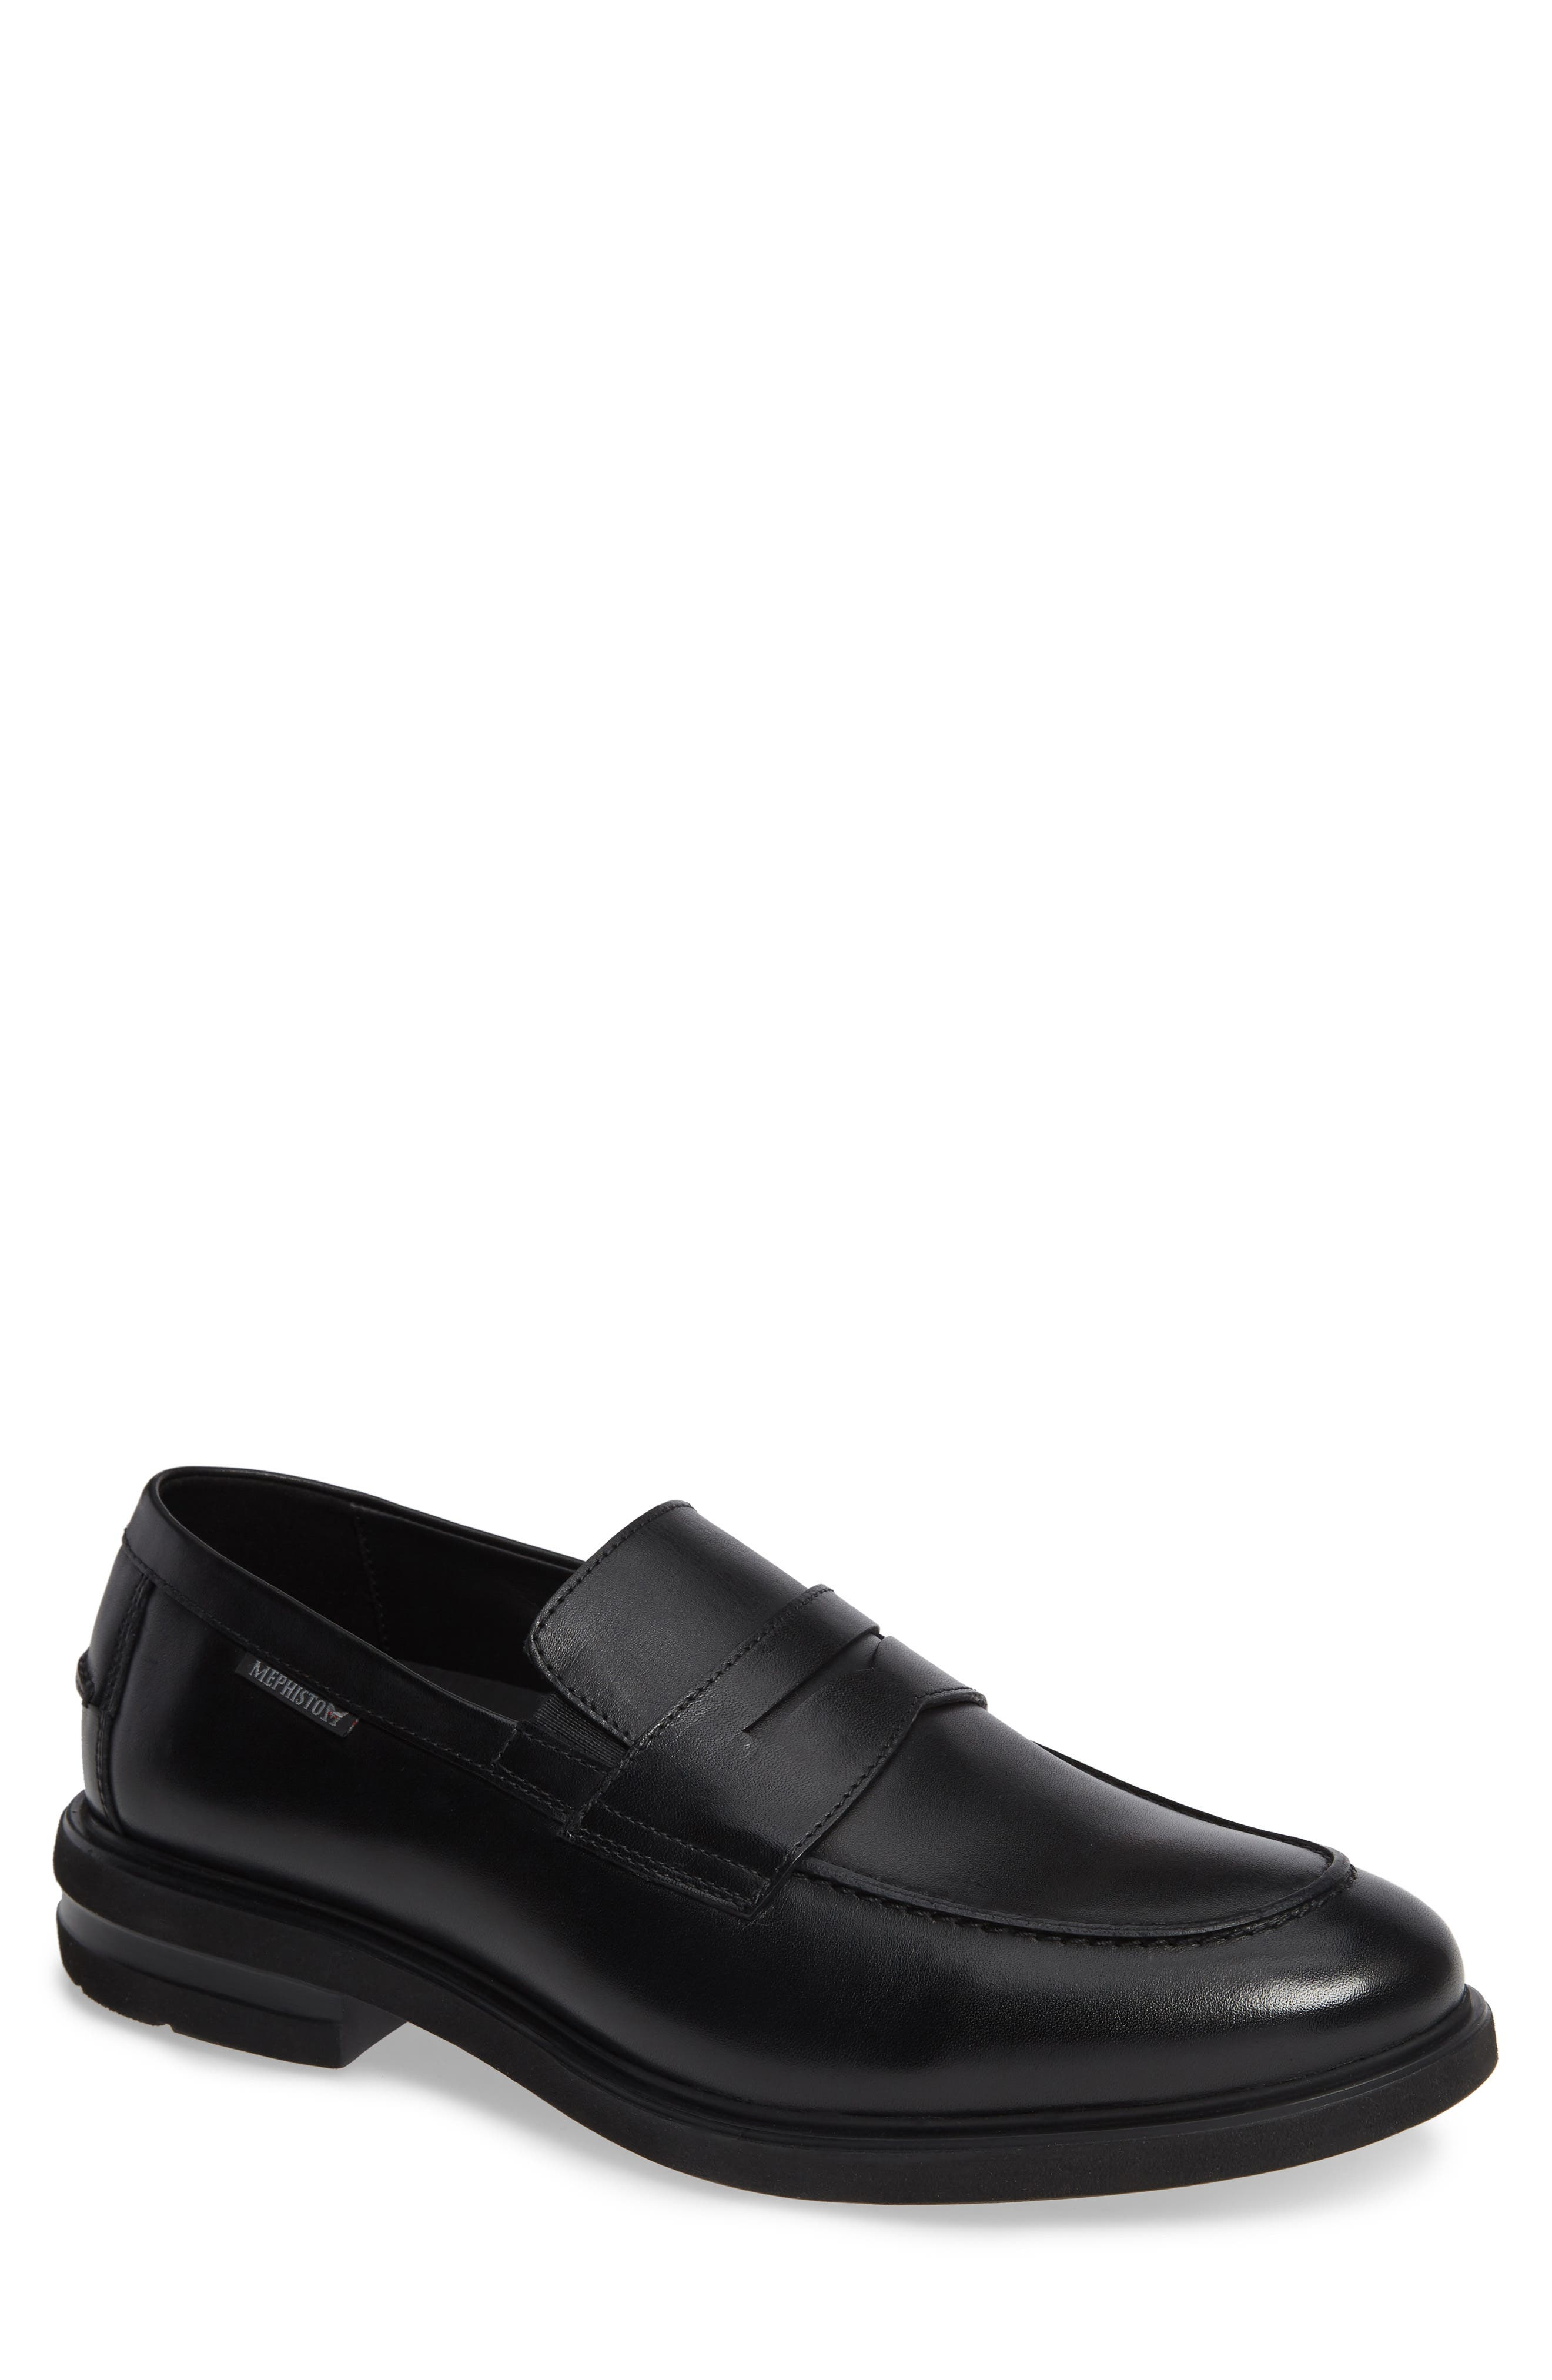 Orelien Penny Loafer,                             Main thumbnail 1, color,                             BLACK LEATHER